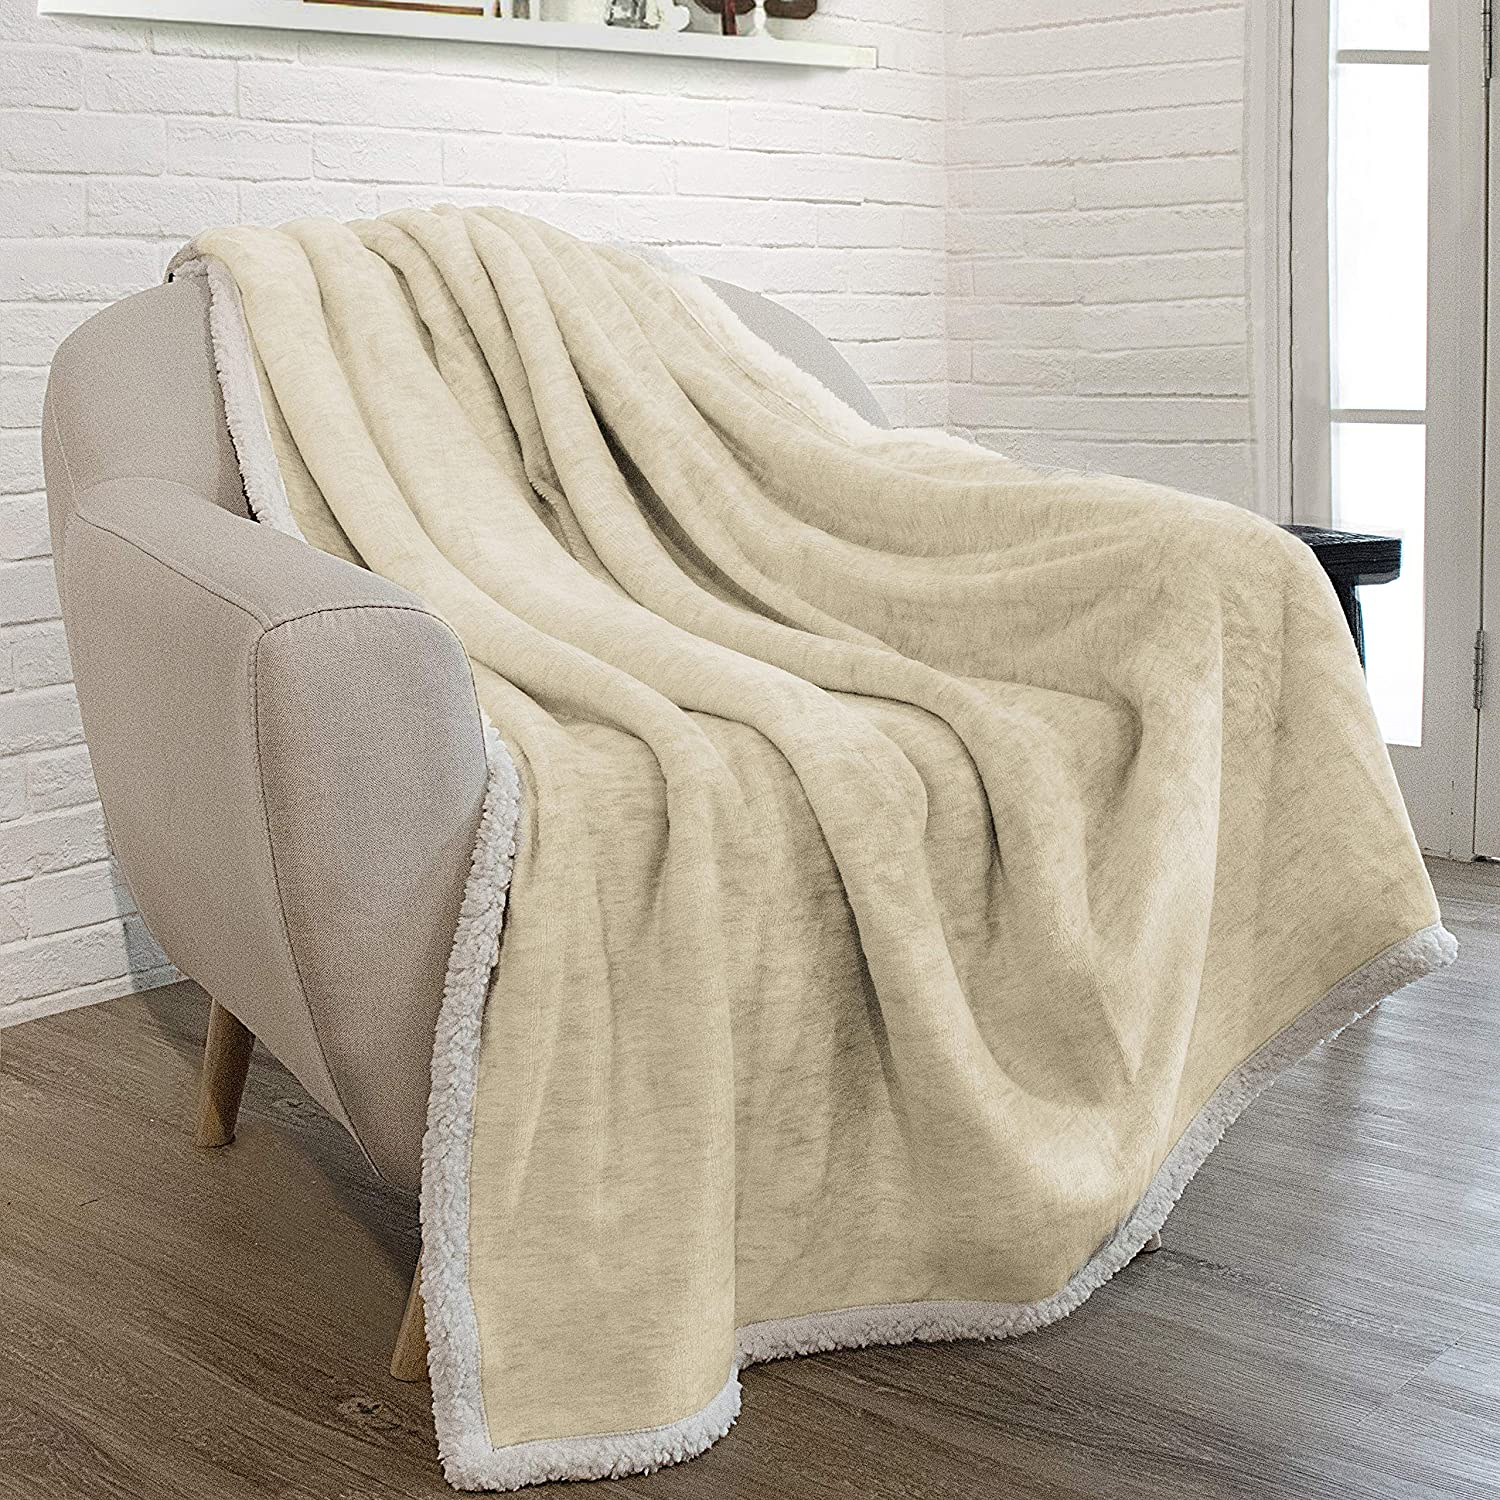 Luxury Modern Reversible TV Blanket Latte